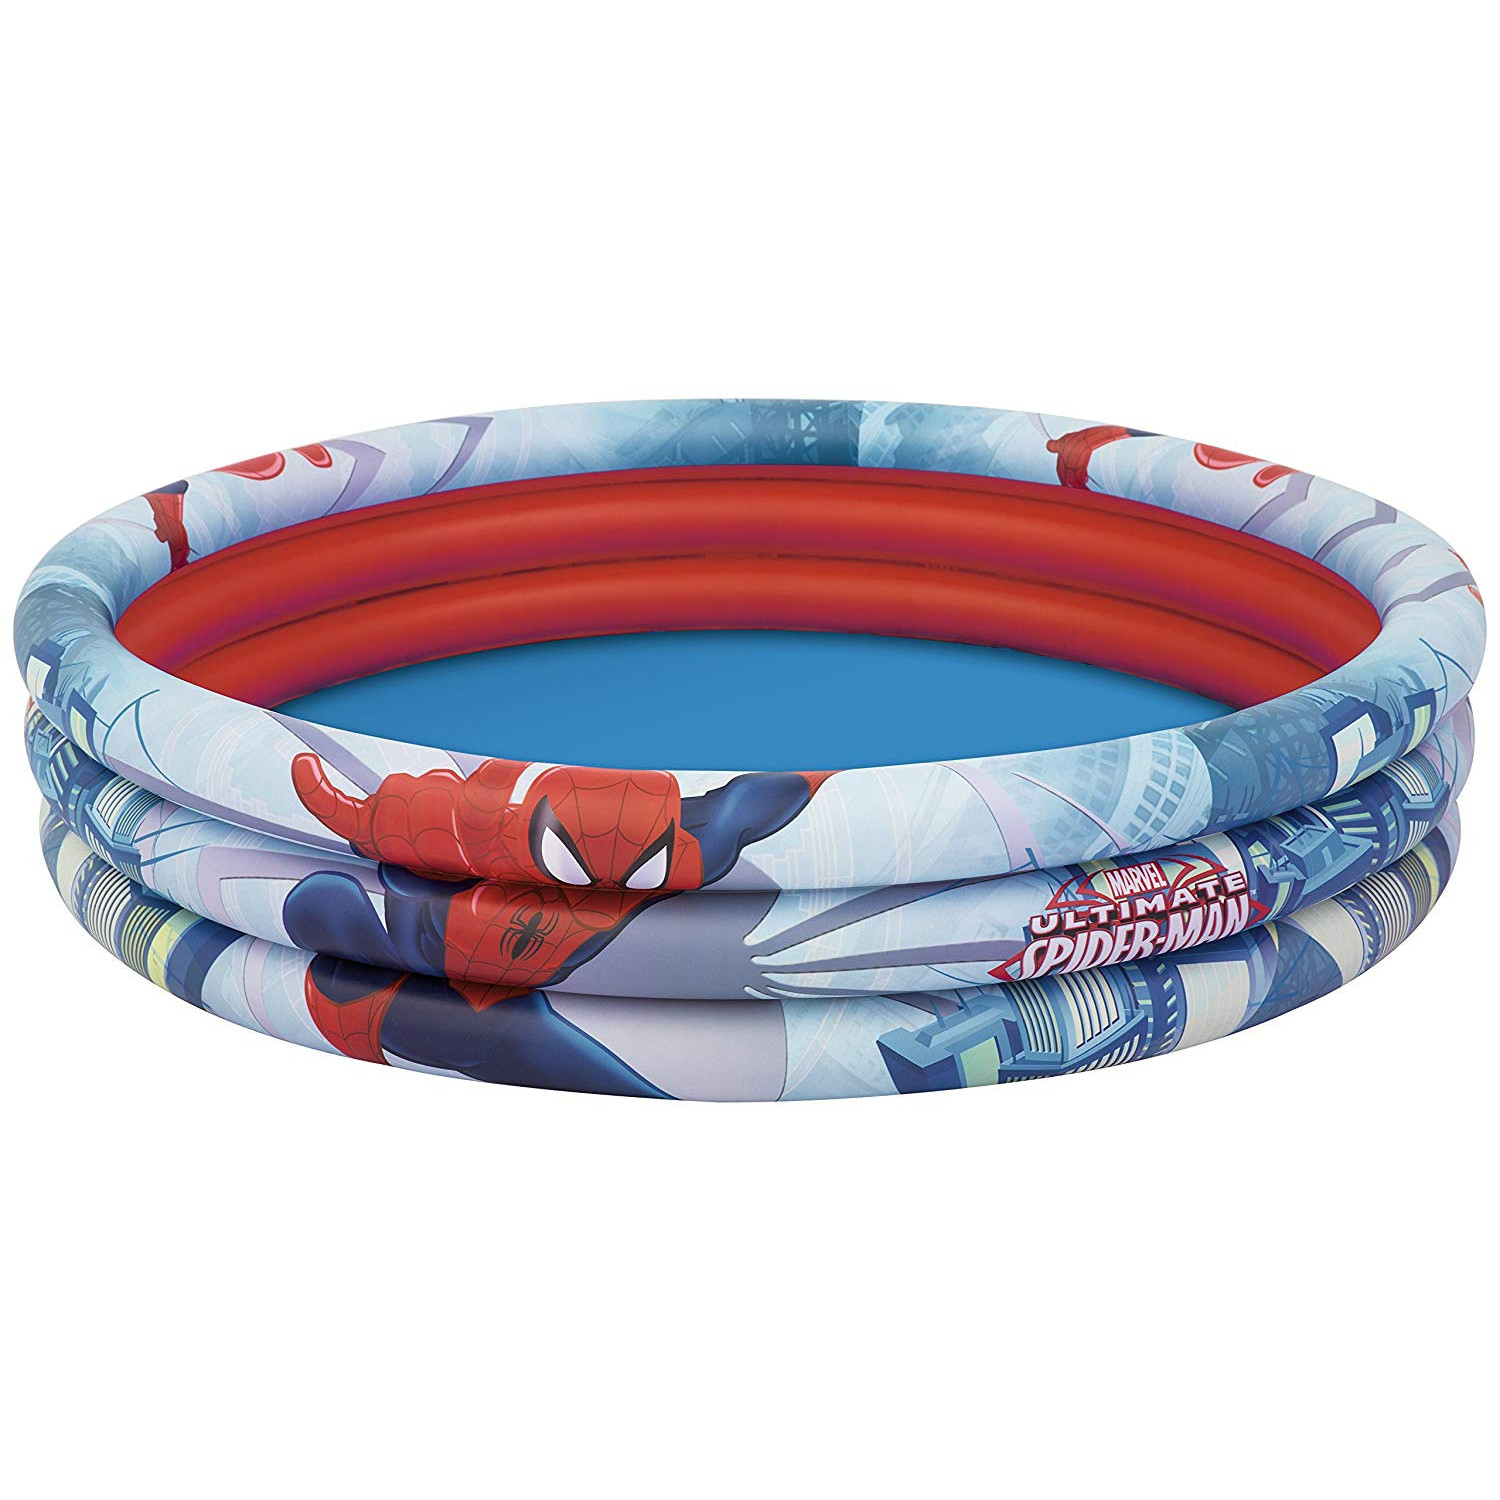 Bestway Inflatable Pool Infant Spiderman Ø152 Cm X 30 Cm-98006